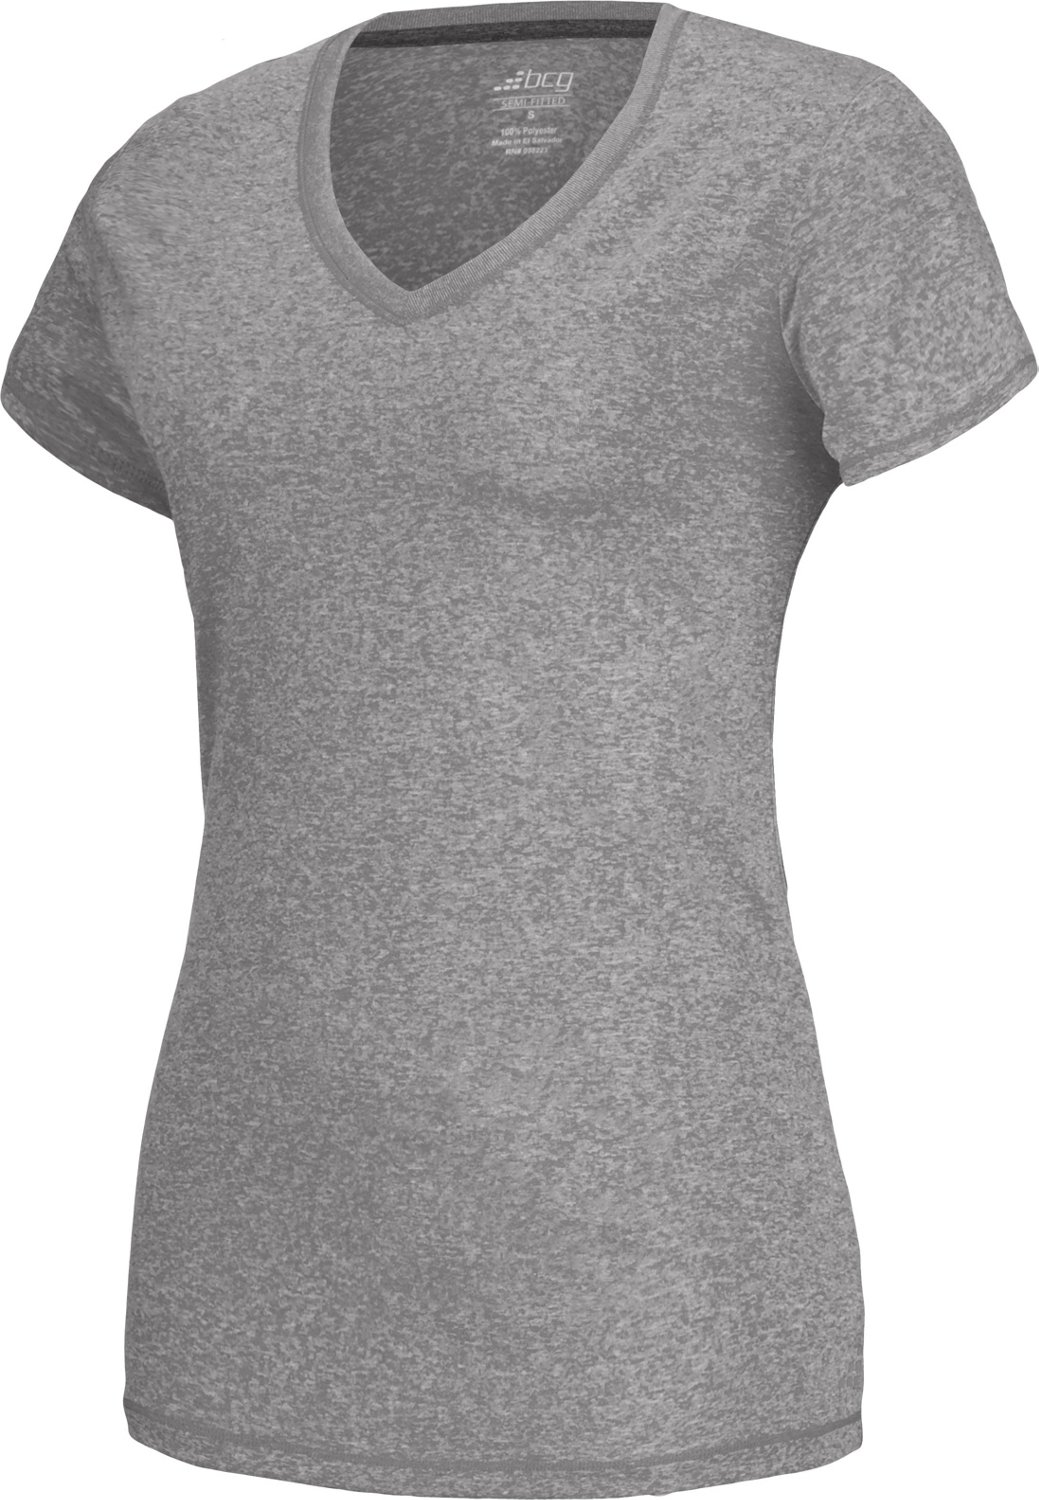 b8b0f8cec0 Display product reviews for BCG Women's Heather V-neck Training Tech T-shirt